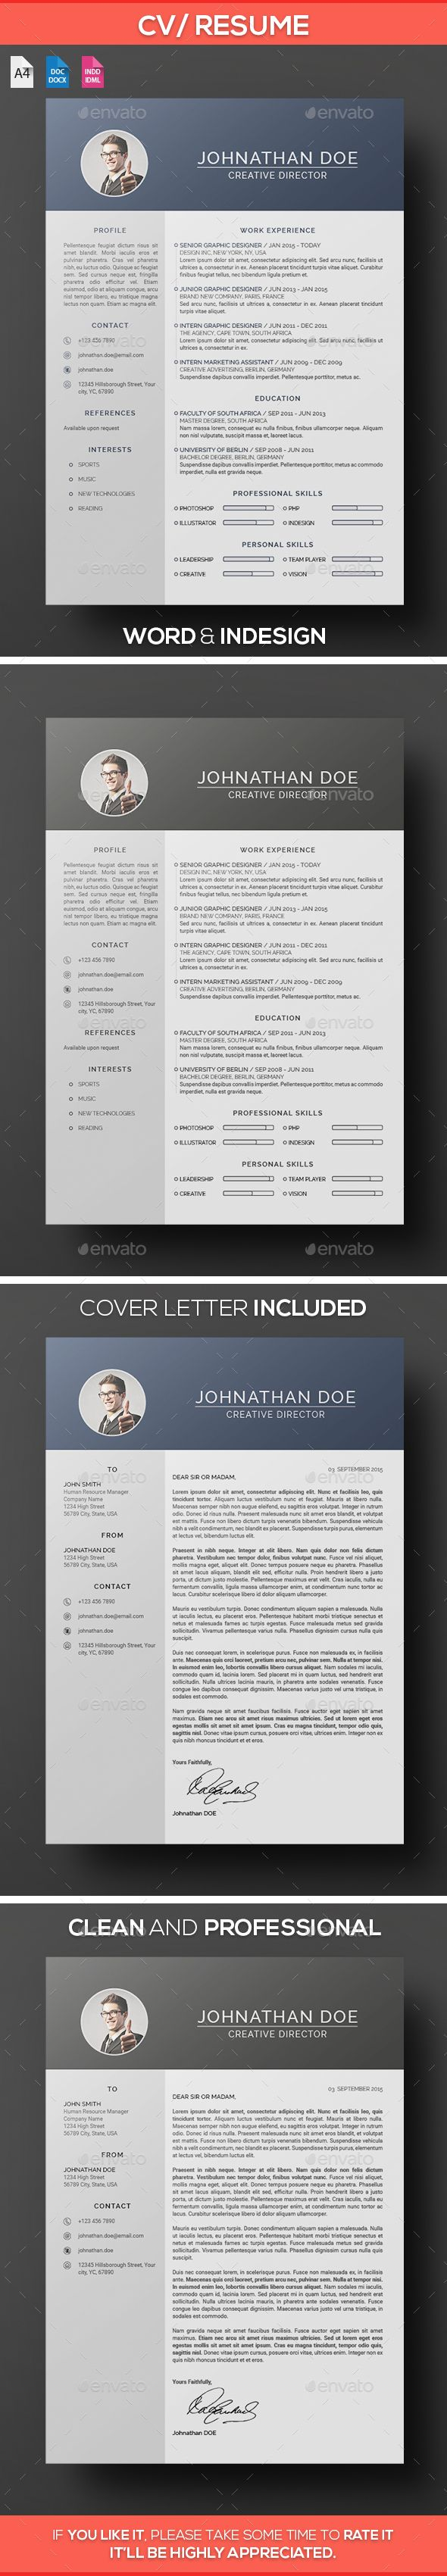 Scientific Cv Latex Templates%0A application cover letter for any job